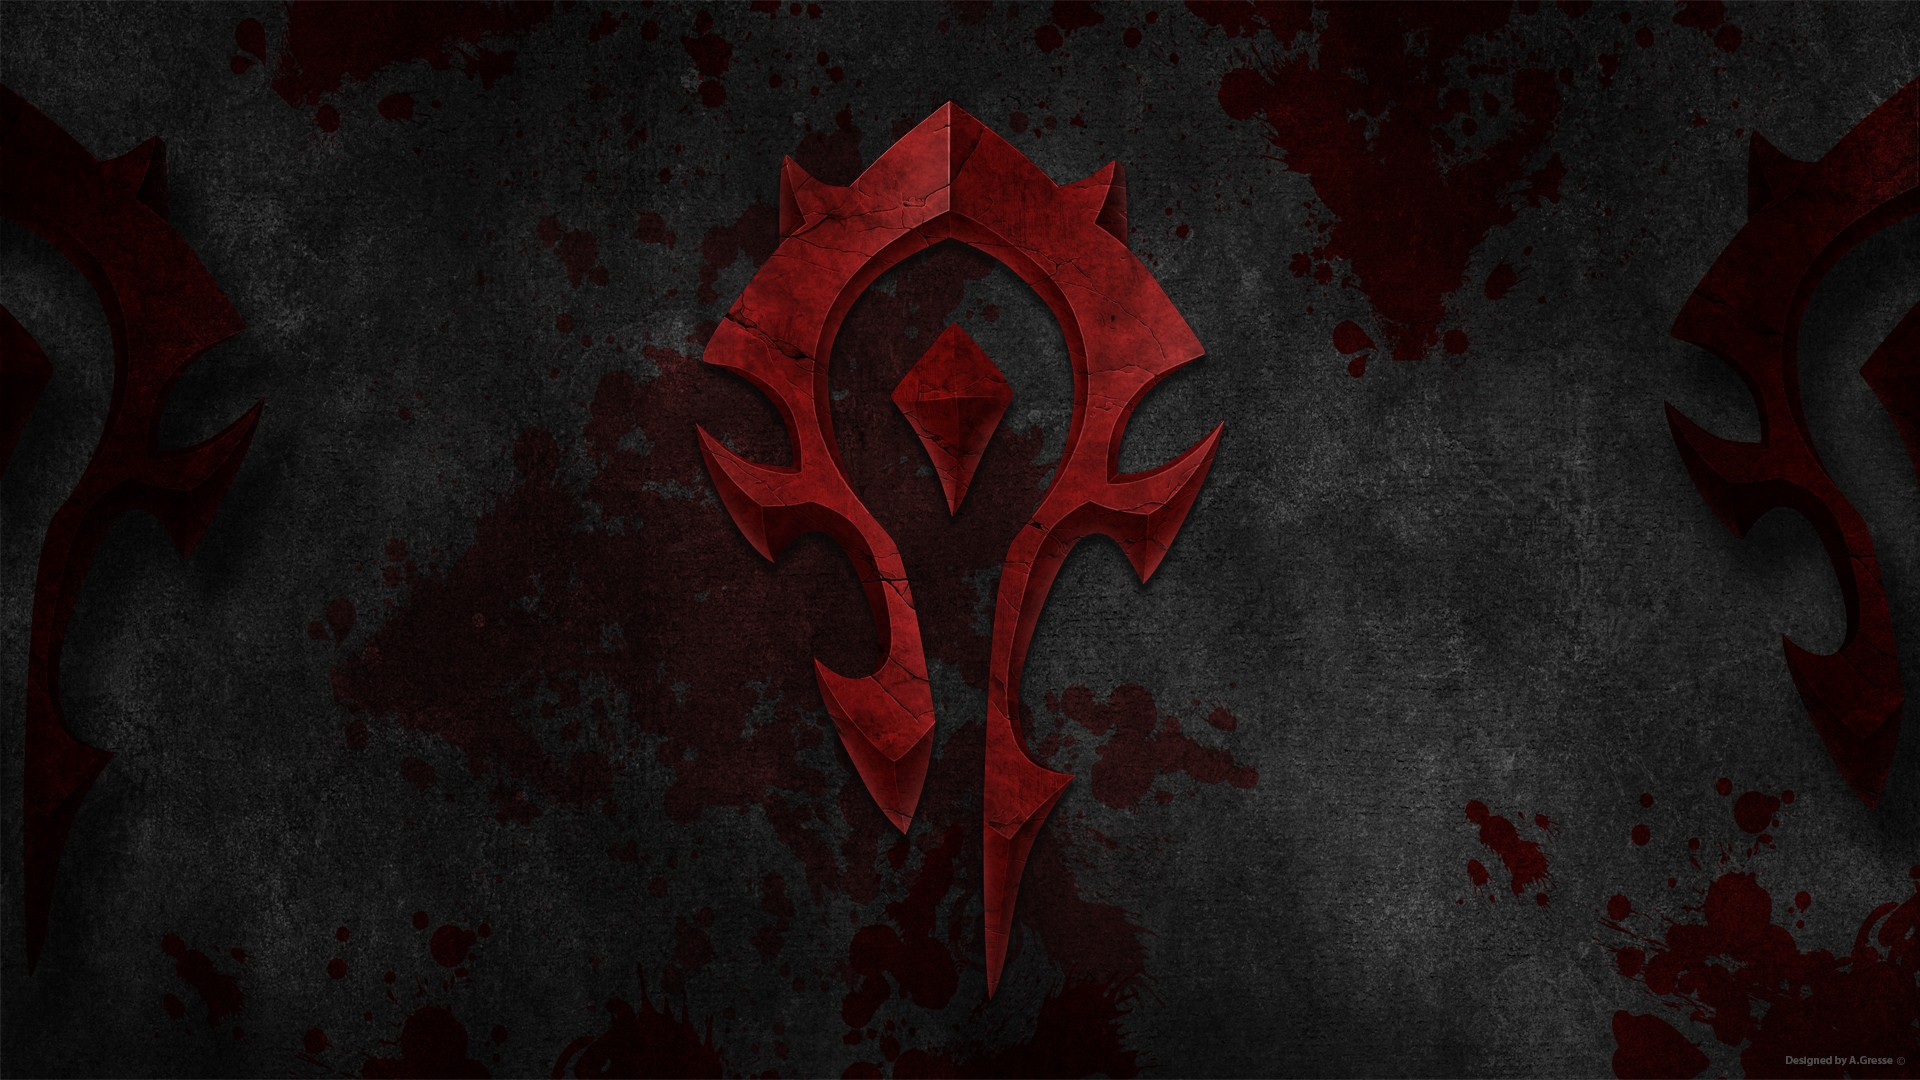 Horde Wallpaper Download Free Amazing Full Hd Wallpapers For